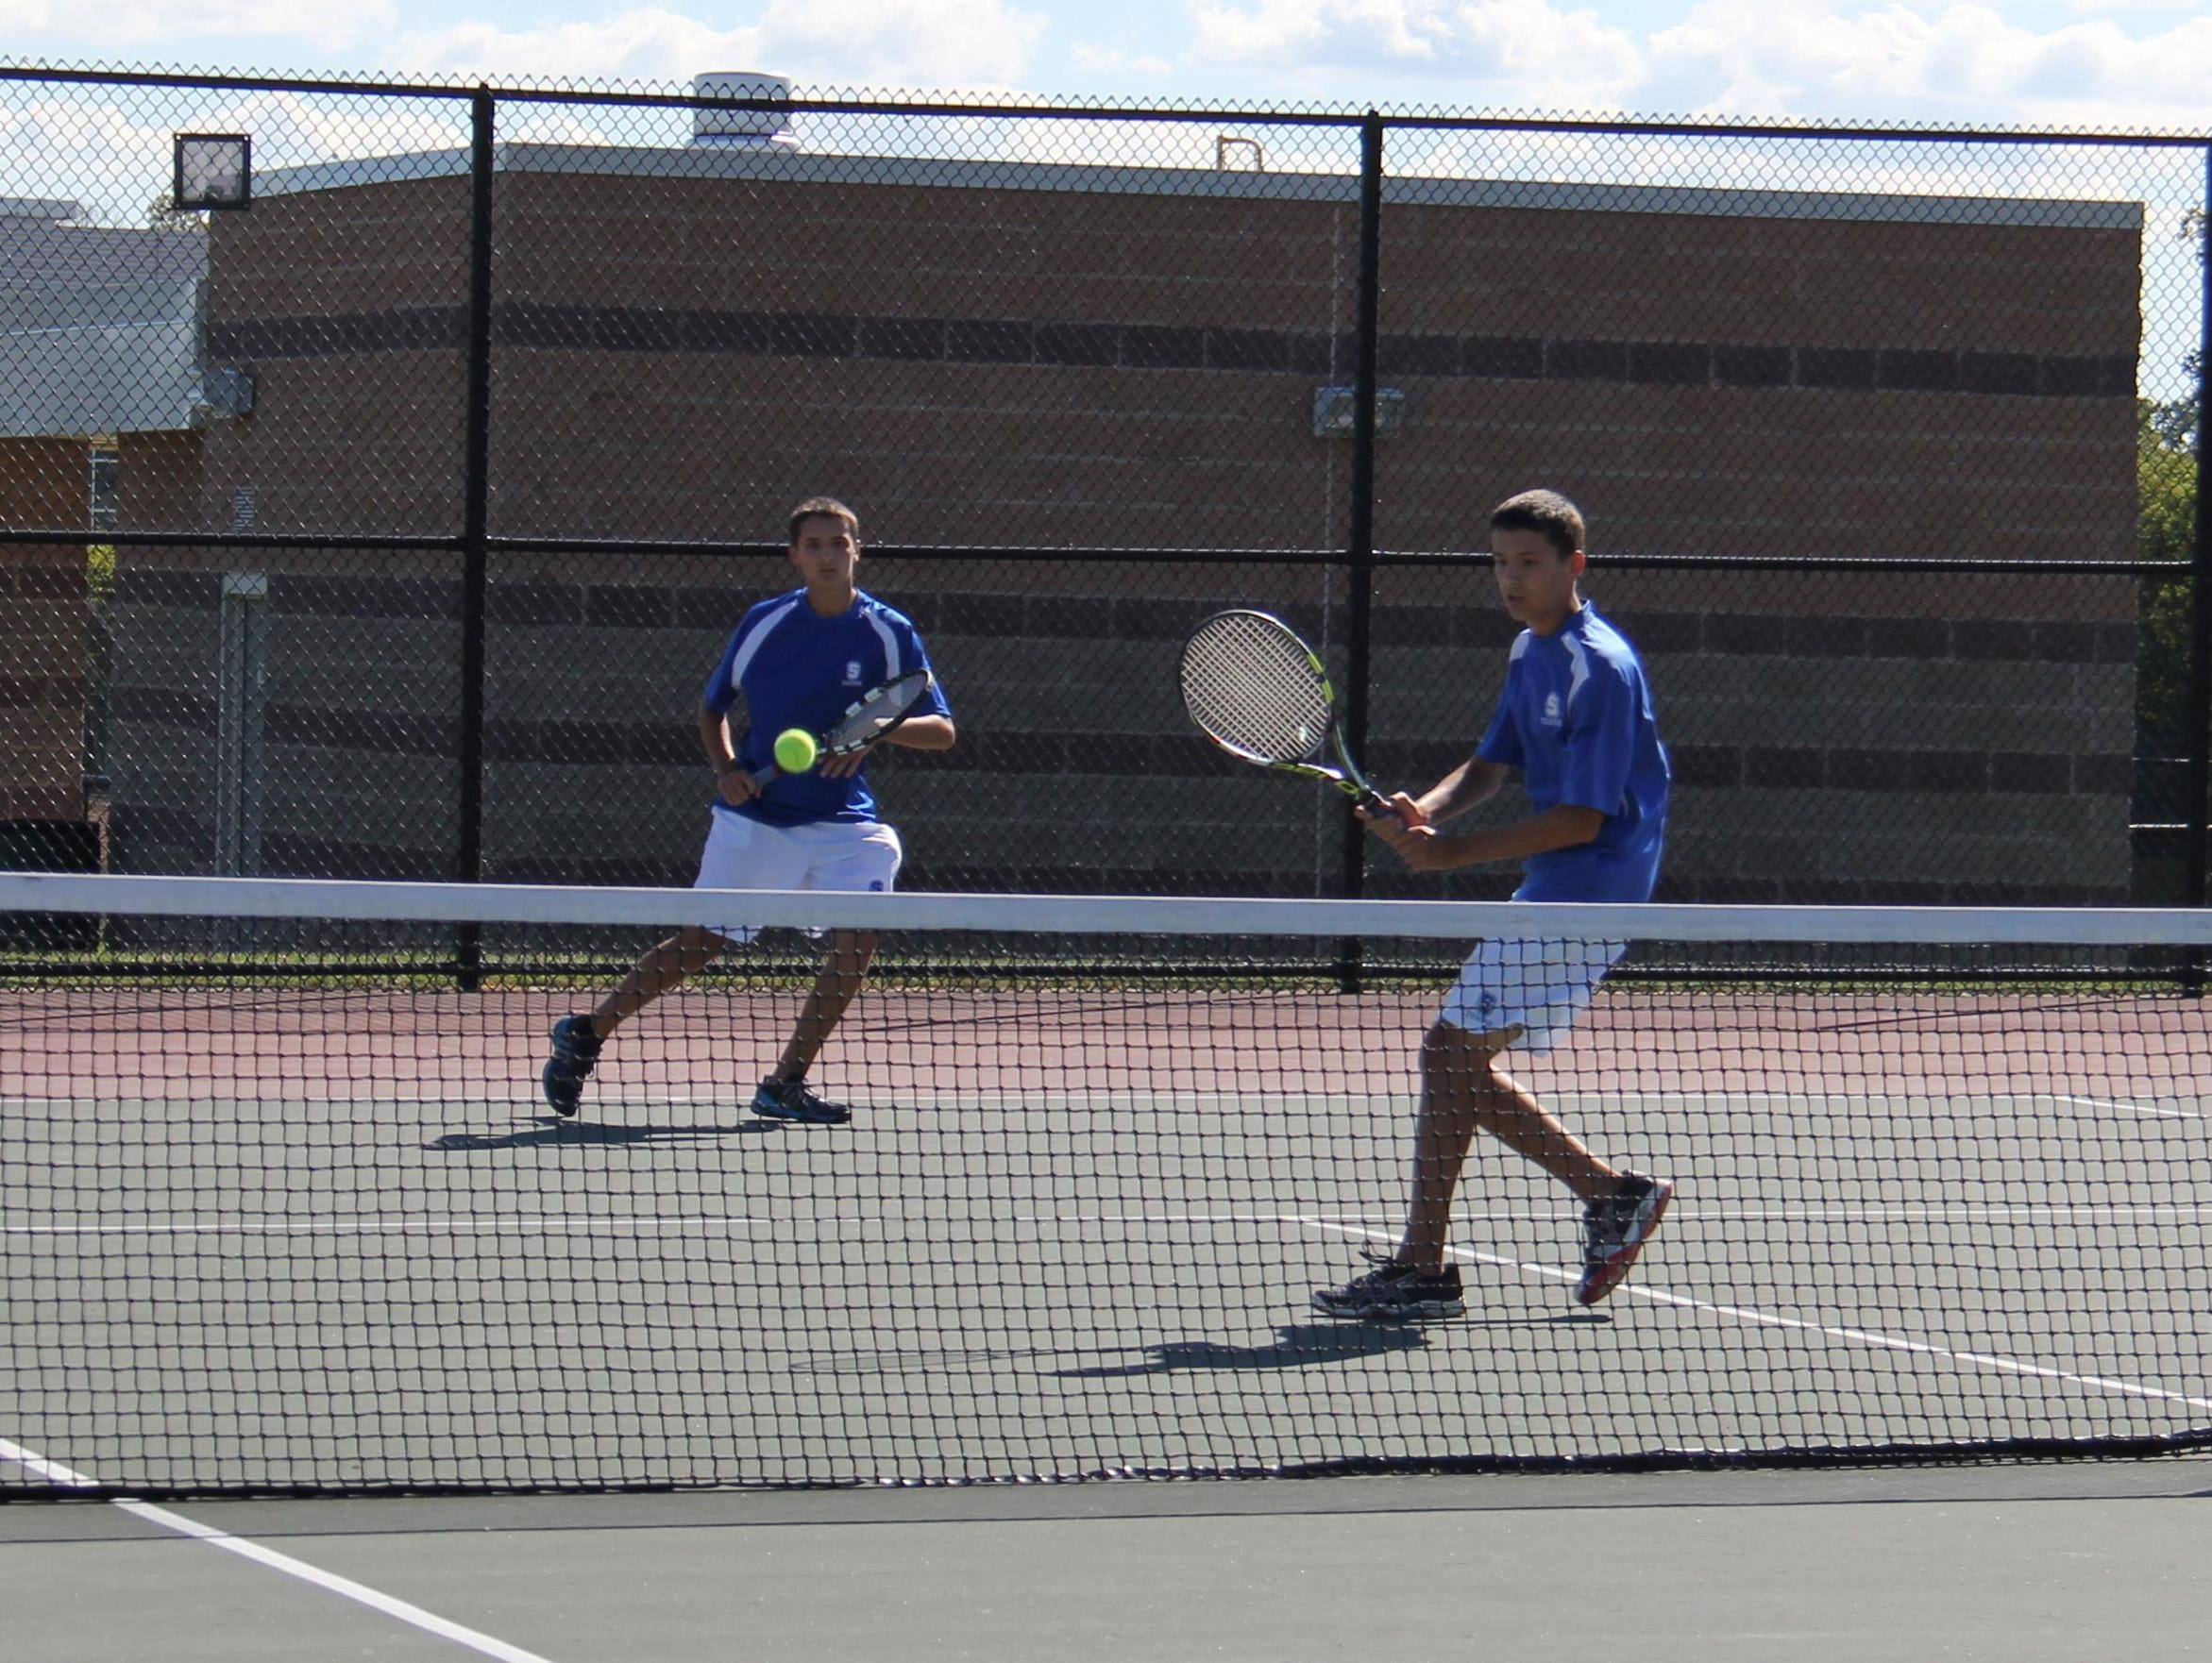 Conor Sweet (foreground) gets ready to smack the ball while doubles teammate and twin brother Caden Sweet watches.